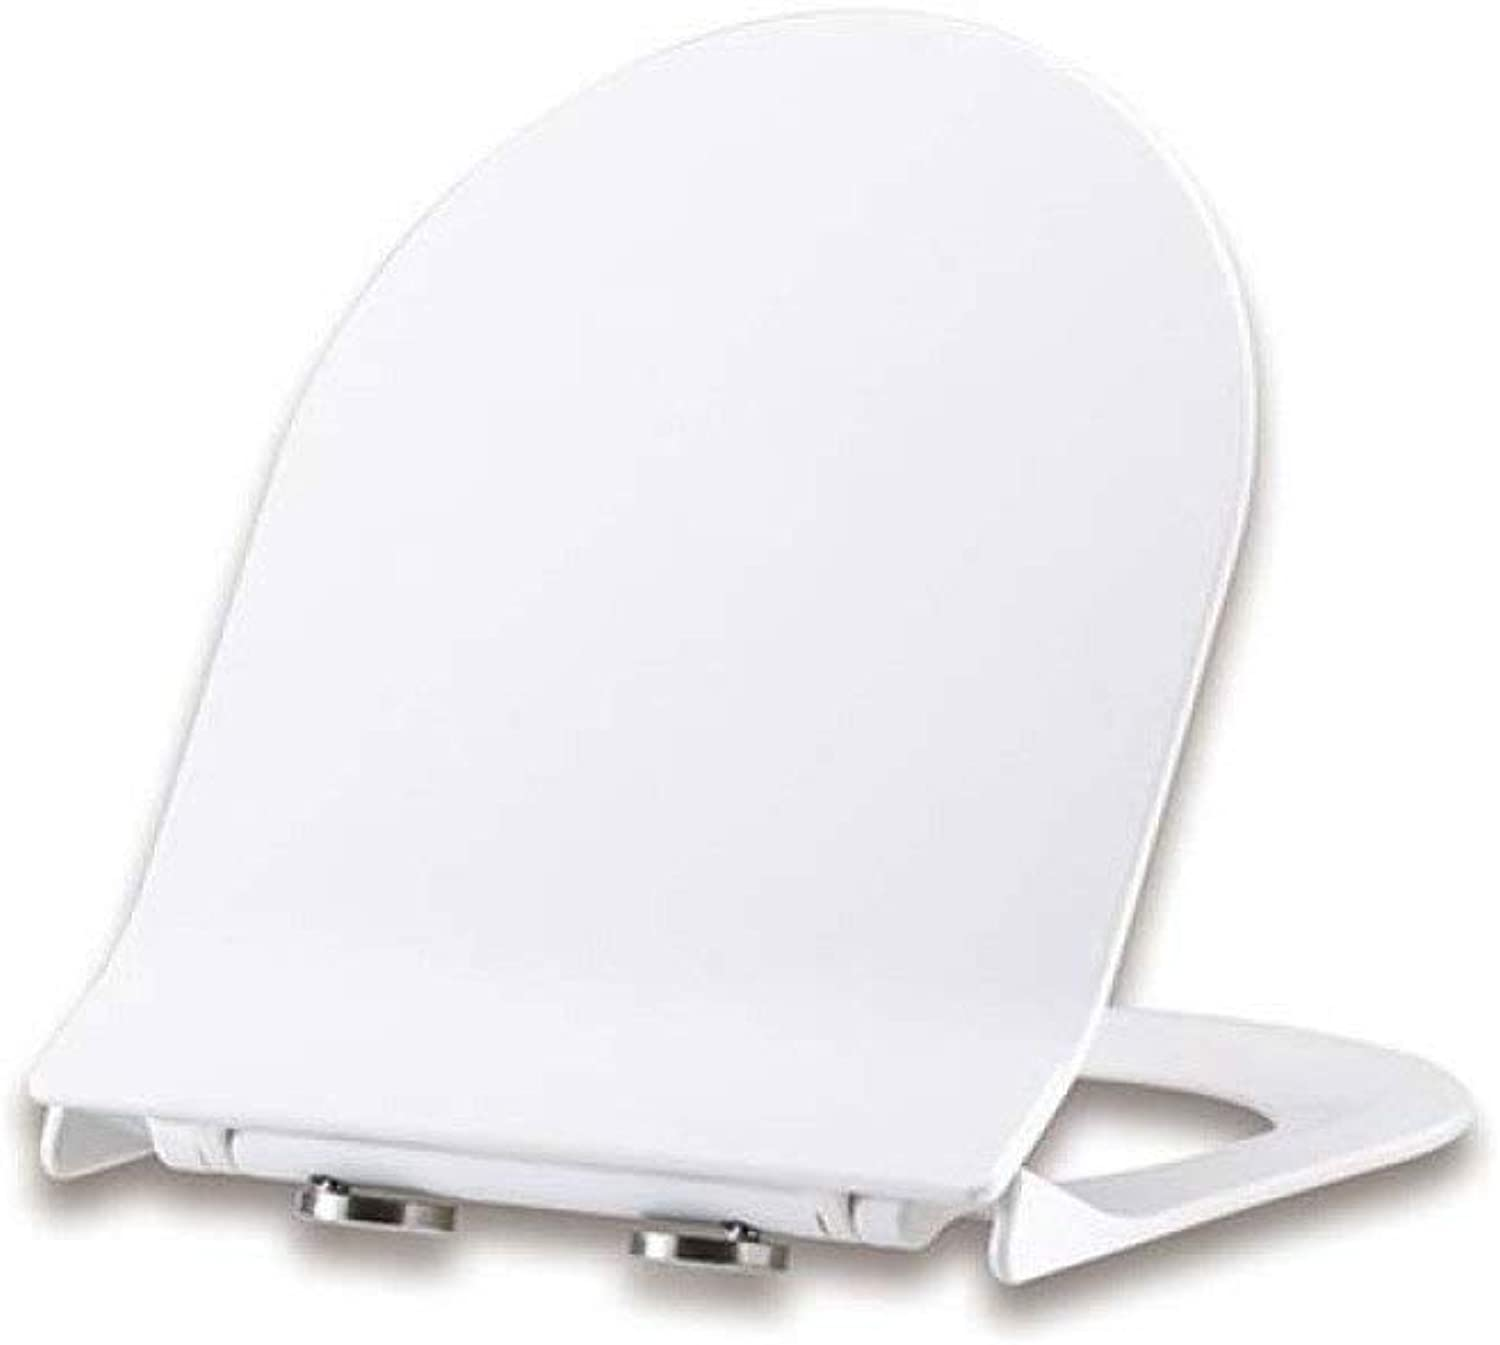 Toilet Lid Toilet Seats, U Shape Toilet Seat Drop Mute Release Hinges One Second To Remove Ultra Resistant Top Mounted, White-4244  36.2CM